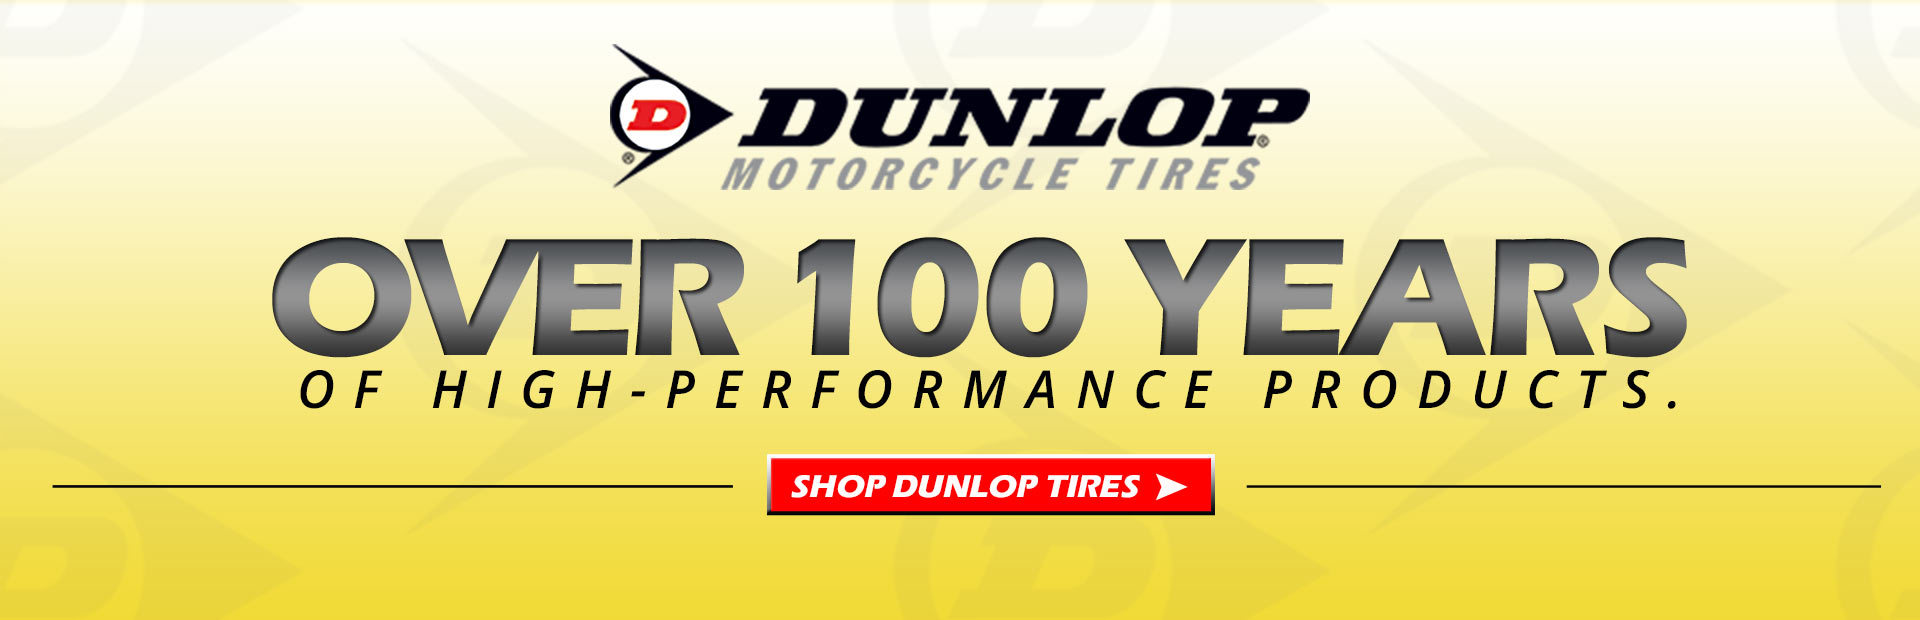 Home Dreyer Motorsports Indianapolis In 877 413 8881 Virago 250 Fuel Filter Dunlop Has Been Making High Performance Products For Over 100 Years Click Here To